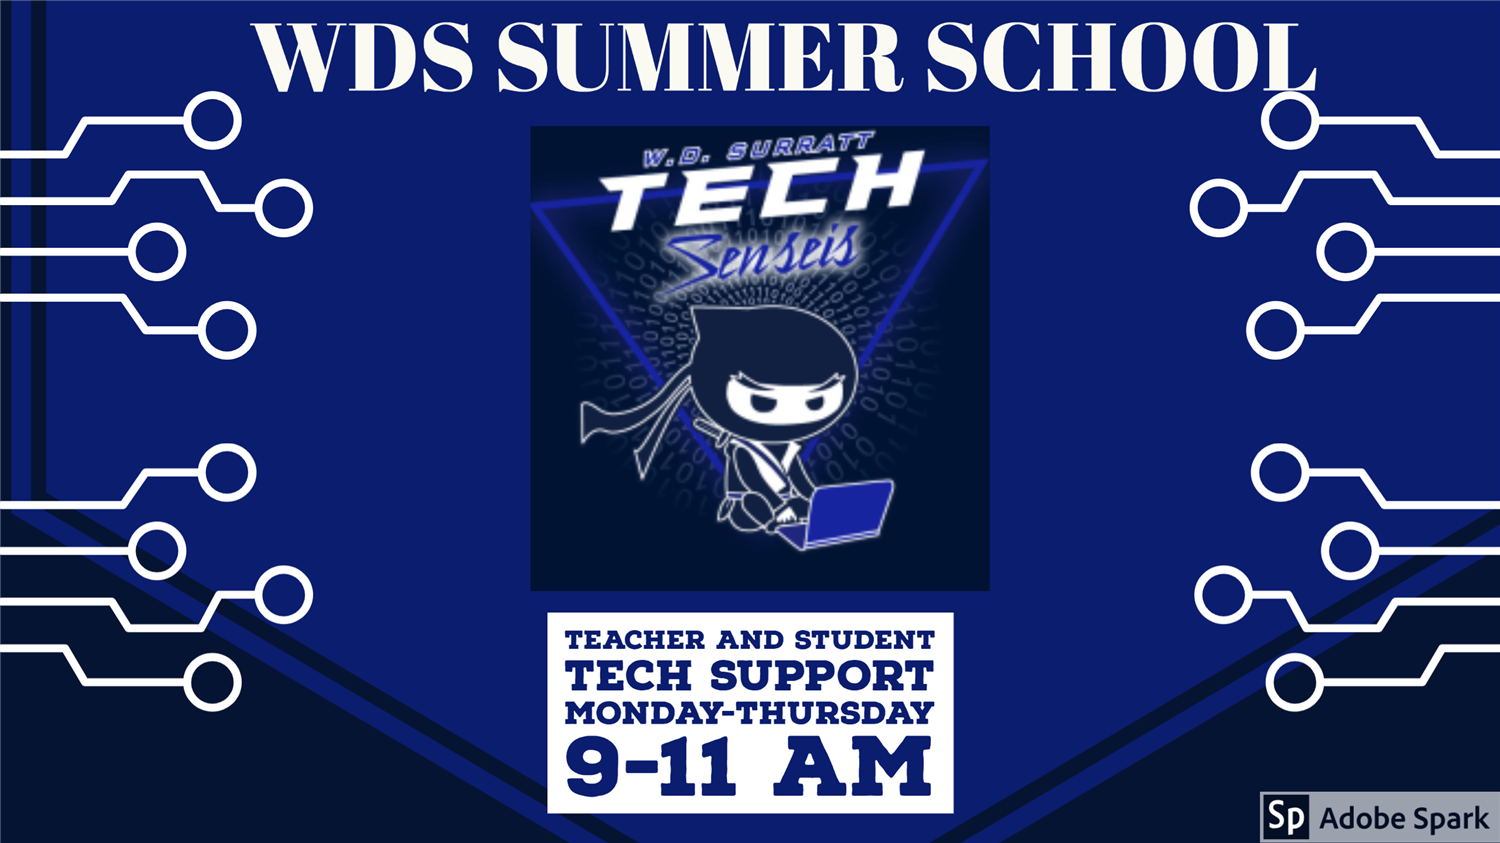 Image of Summer School Tech Support Information